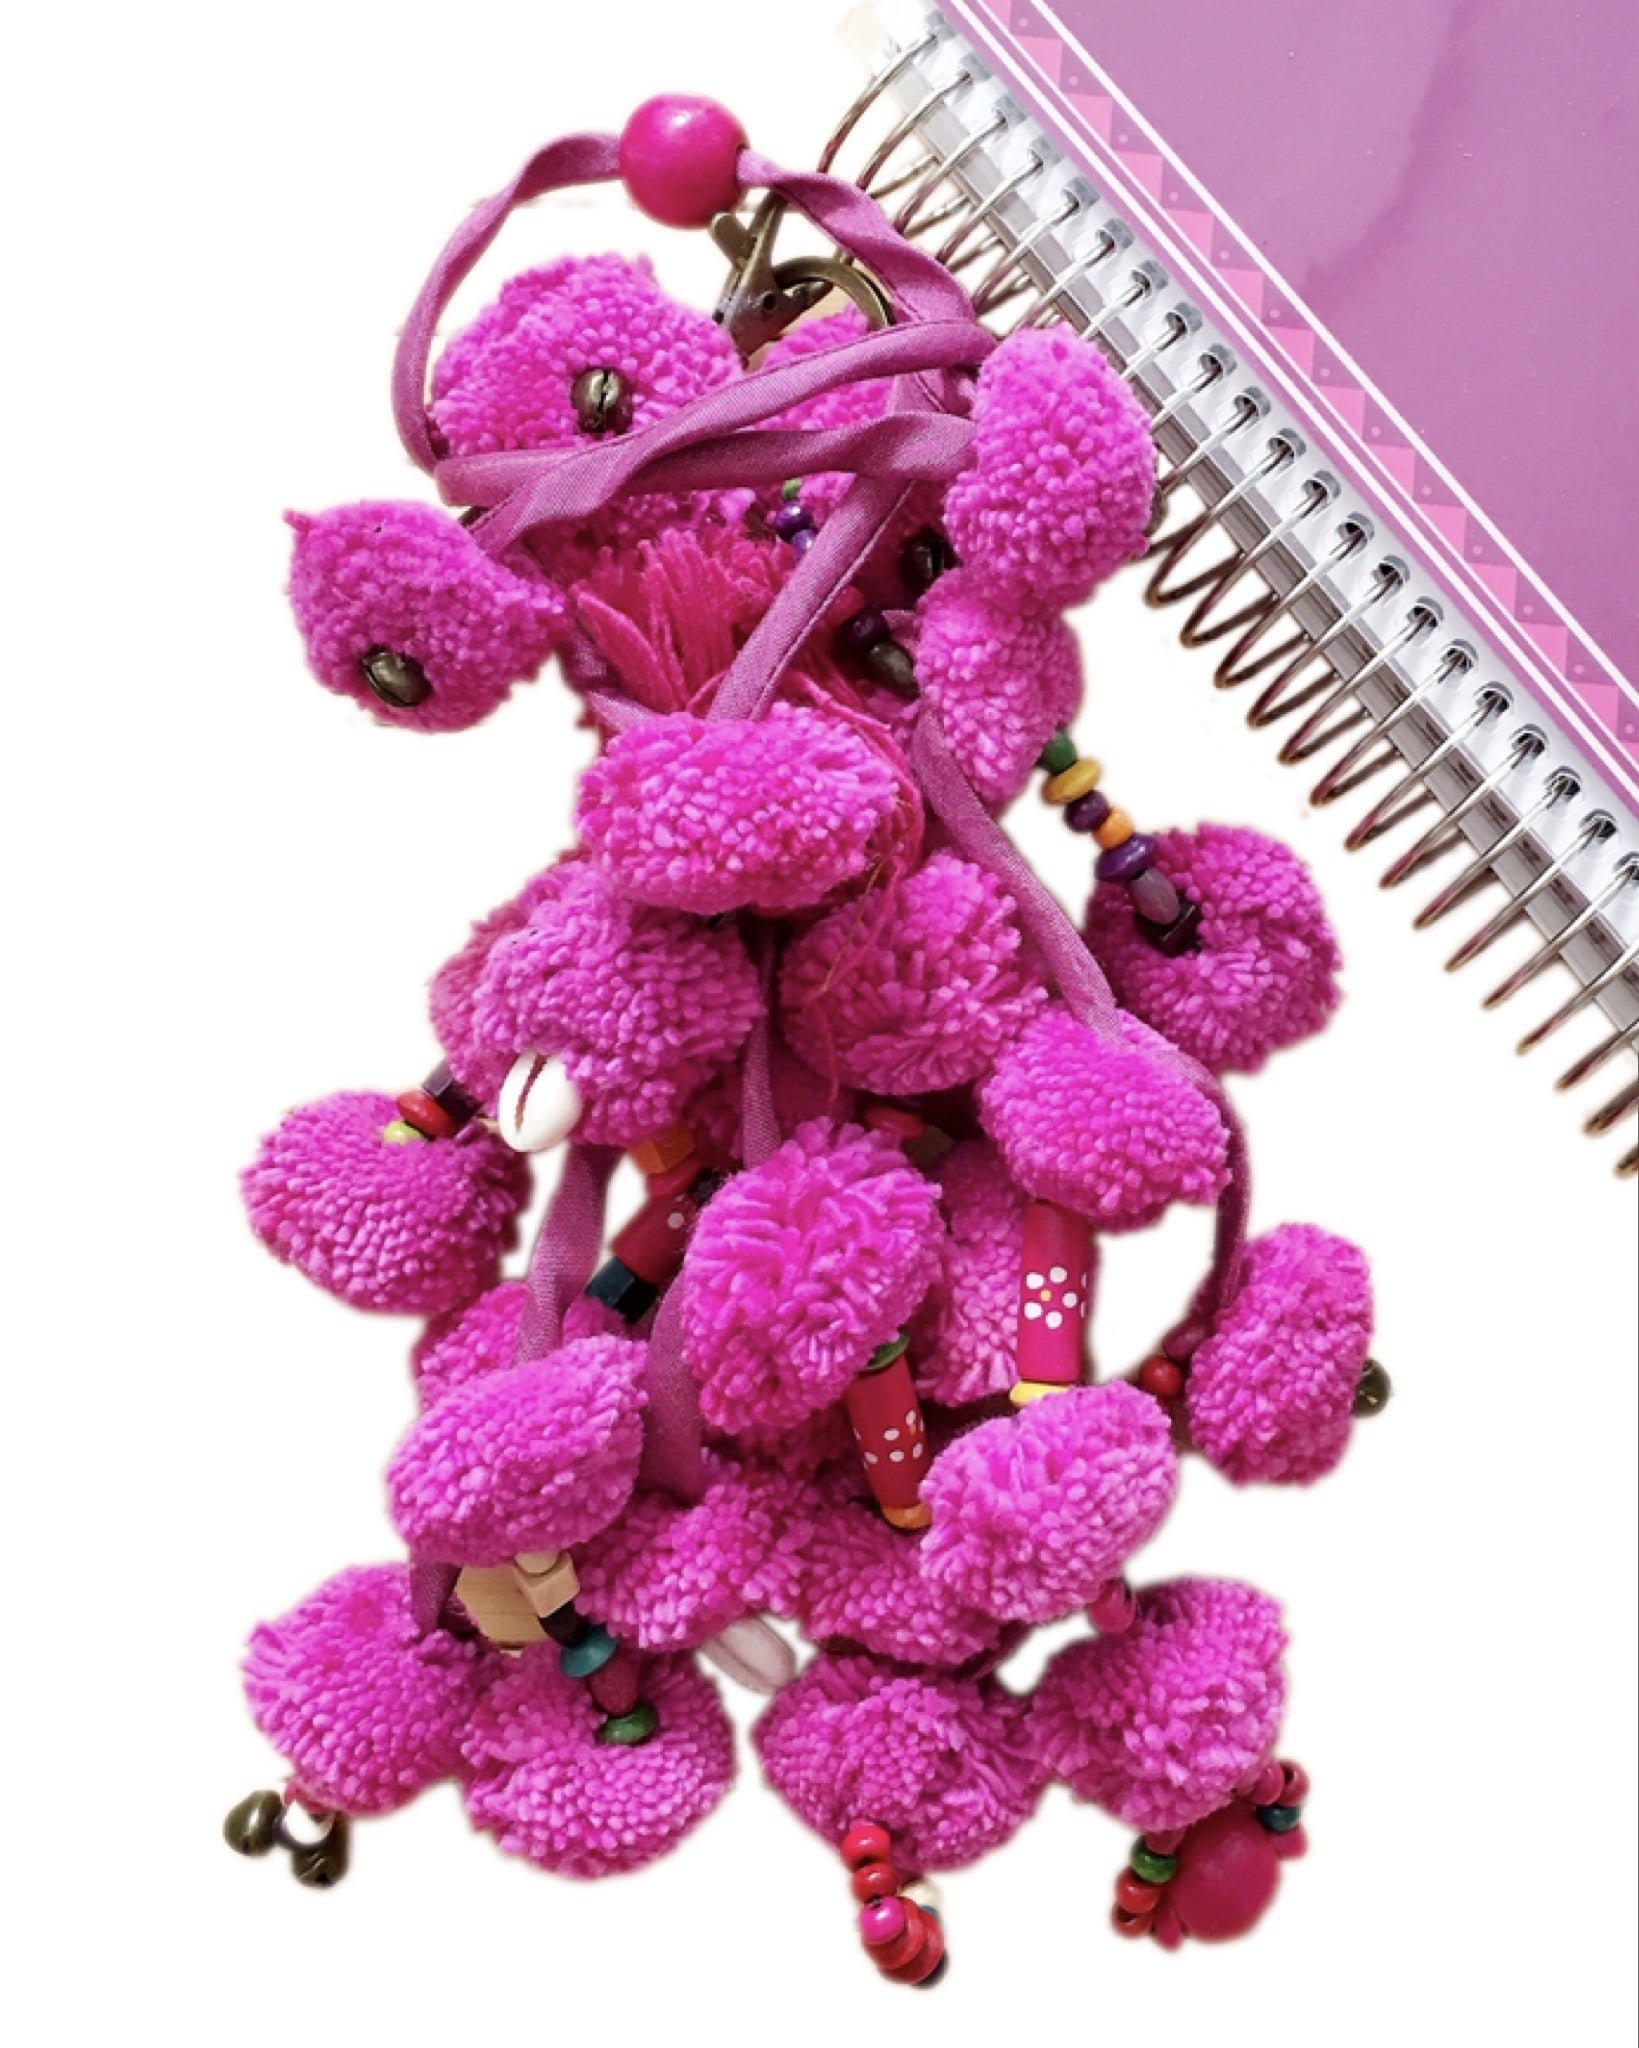 Pom Pom Charms in Monotone colors